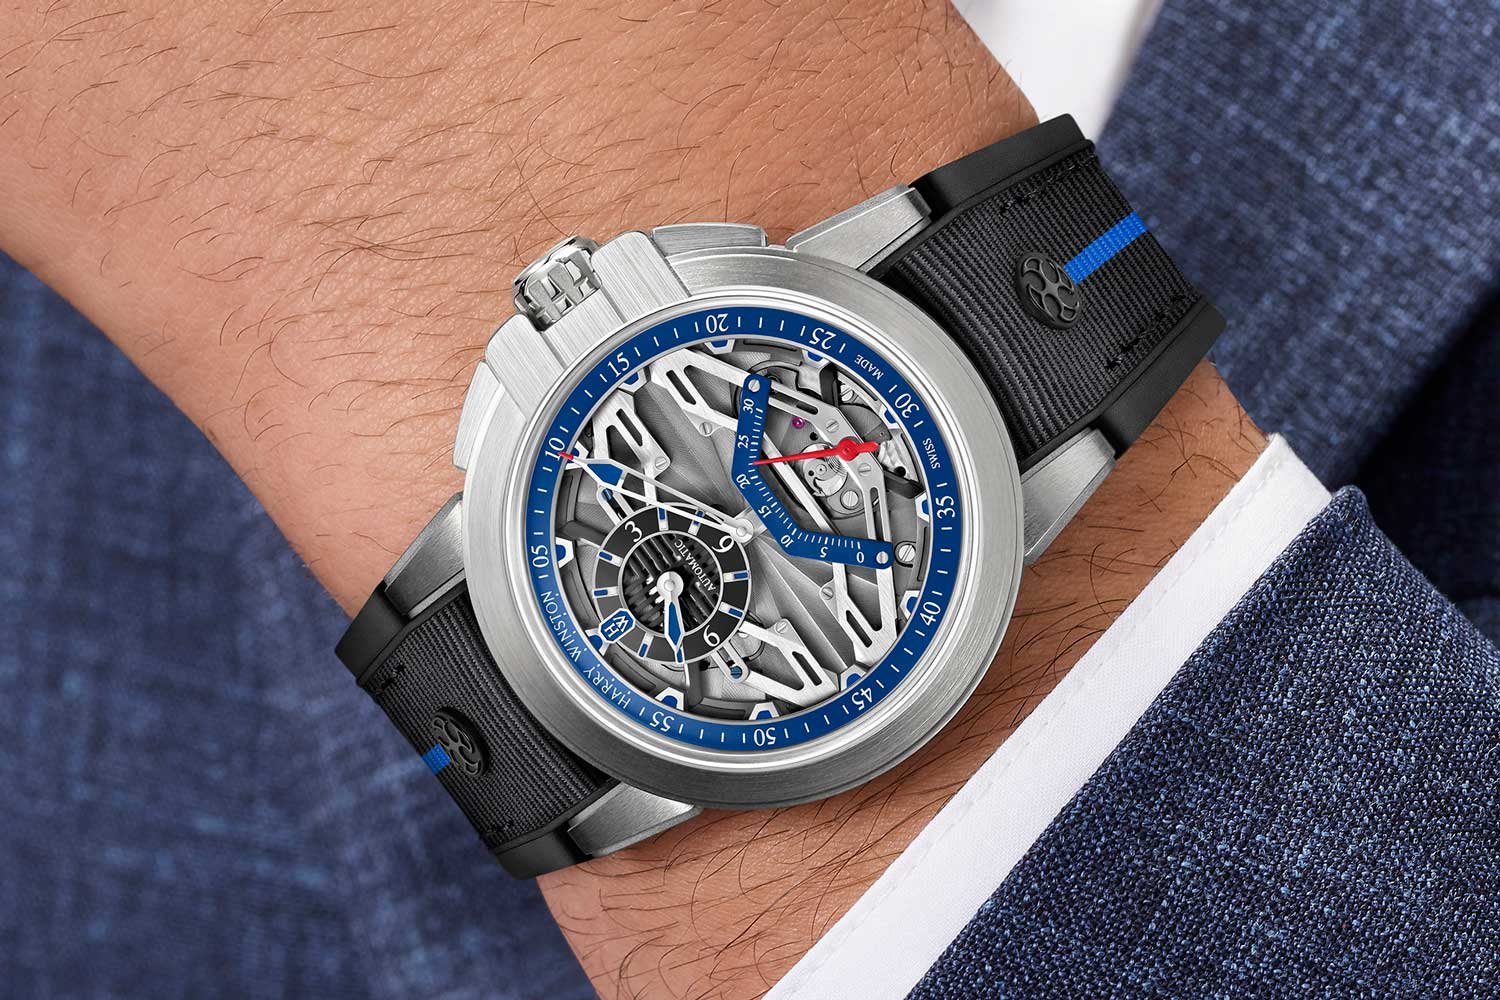 Inspired by regulator clocks, a large and partially skeletonized hand with blue and red extremities marks the passing minutes on the blue counter on Project Z15's dial.